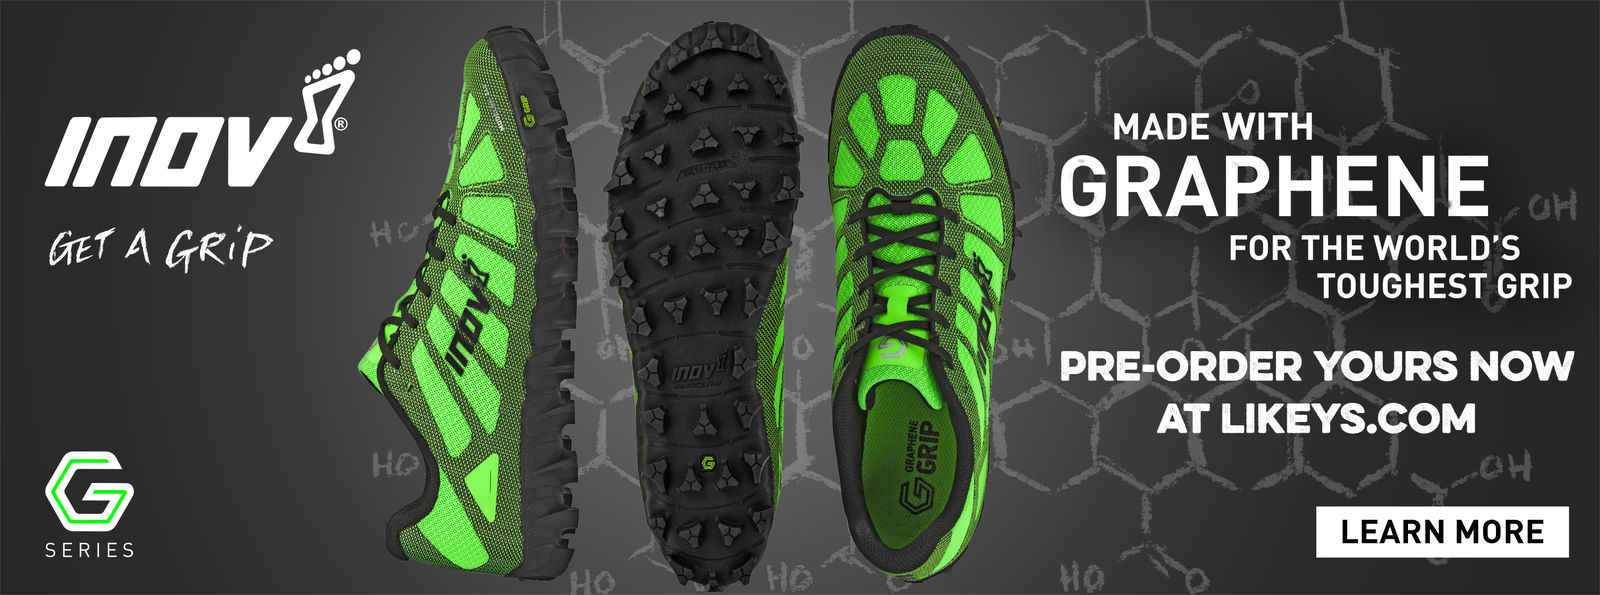 pre-order your pair of Inov-8 Graphene Mudclaw now